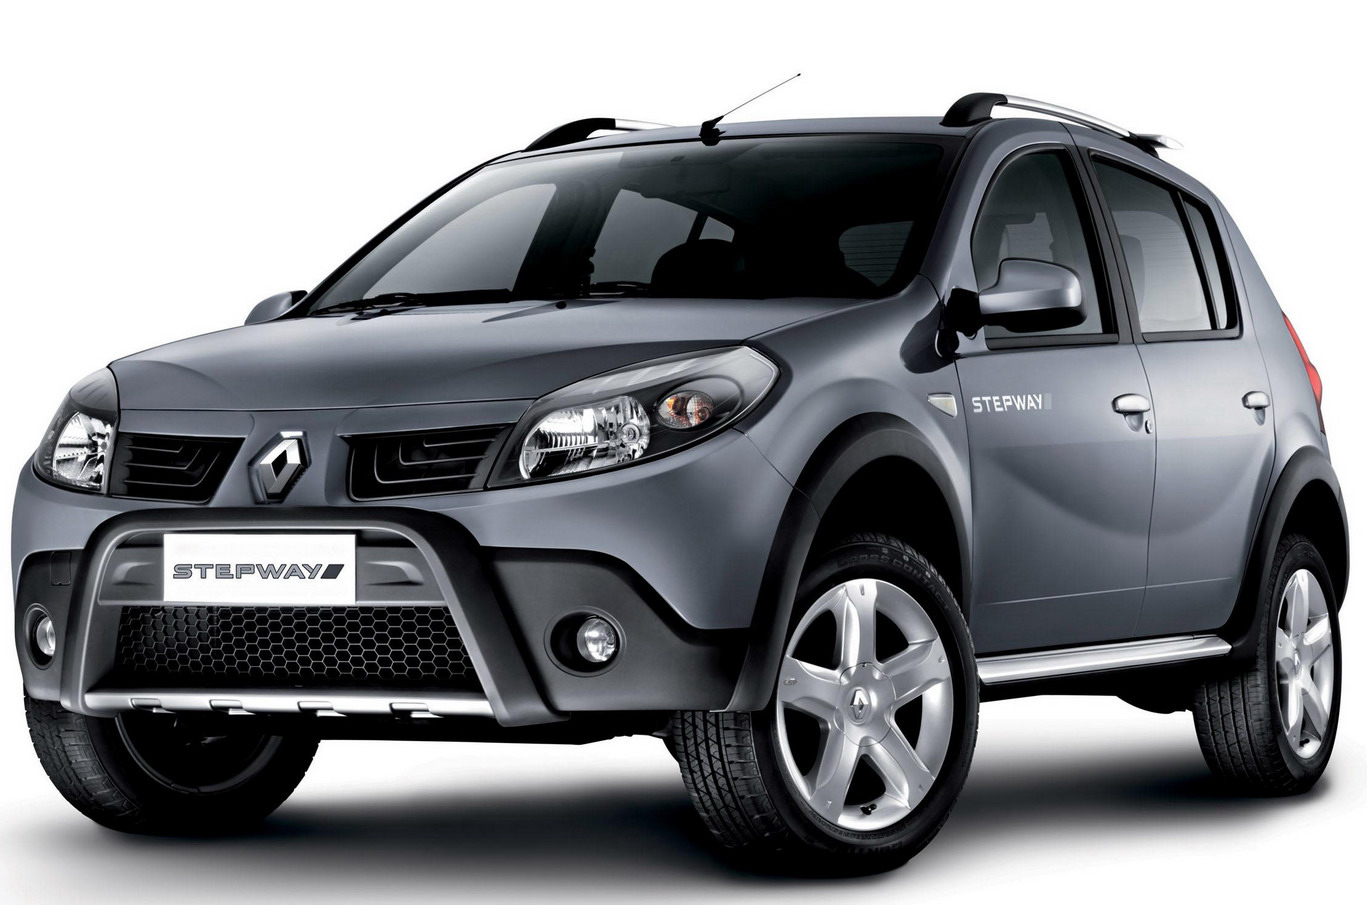 dacia sandero stepway photos reviews news specs buy car. Black Bedroom Furniture Sets. Home Design Ideas